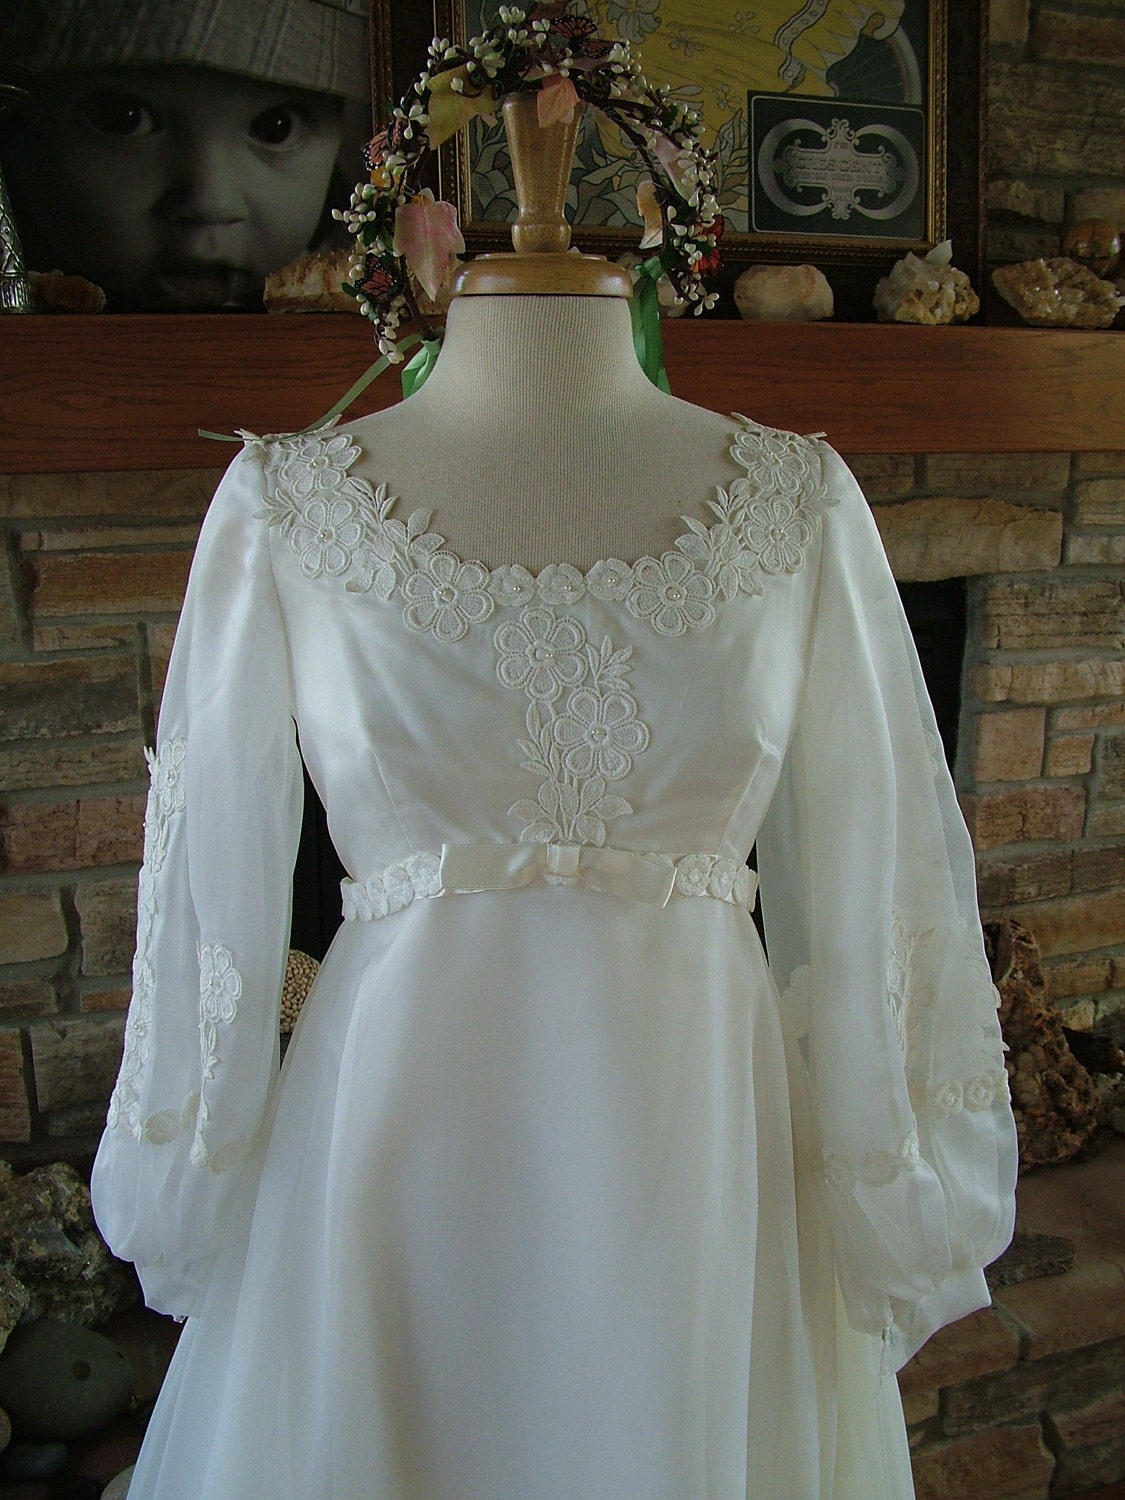 Item details for 1970s vintage wedding dresses